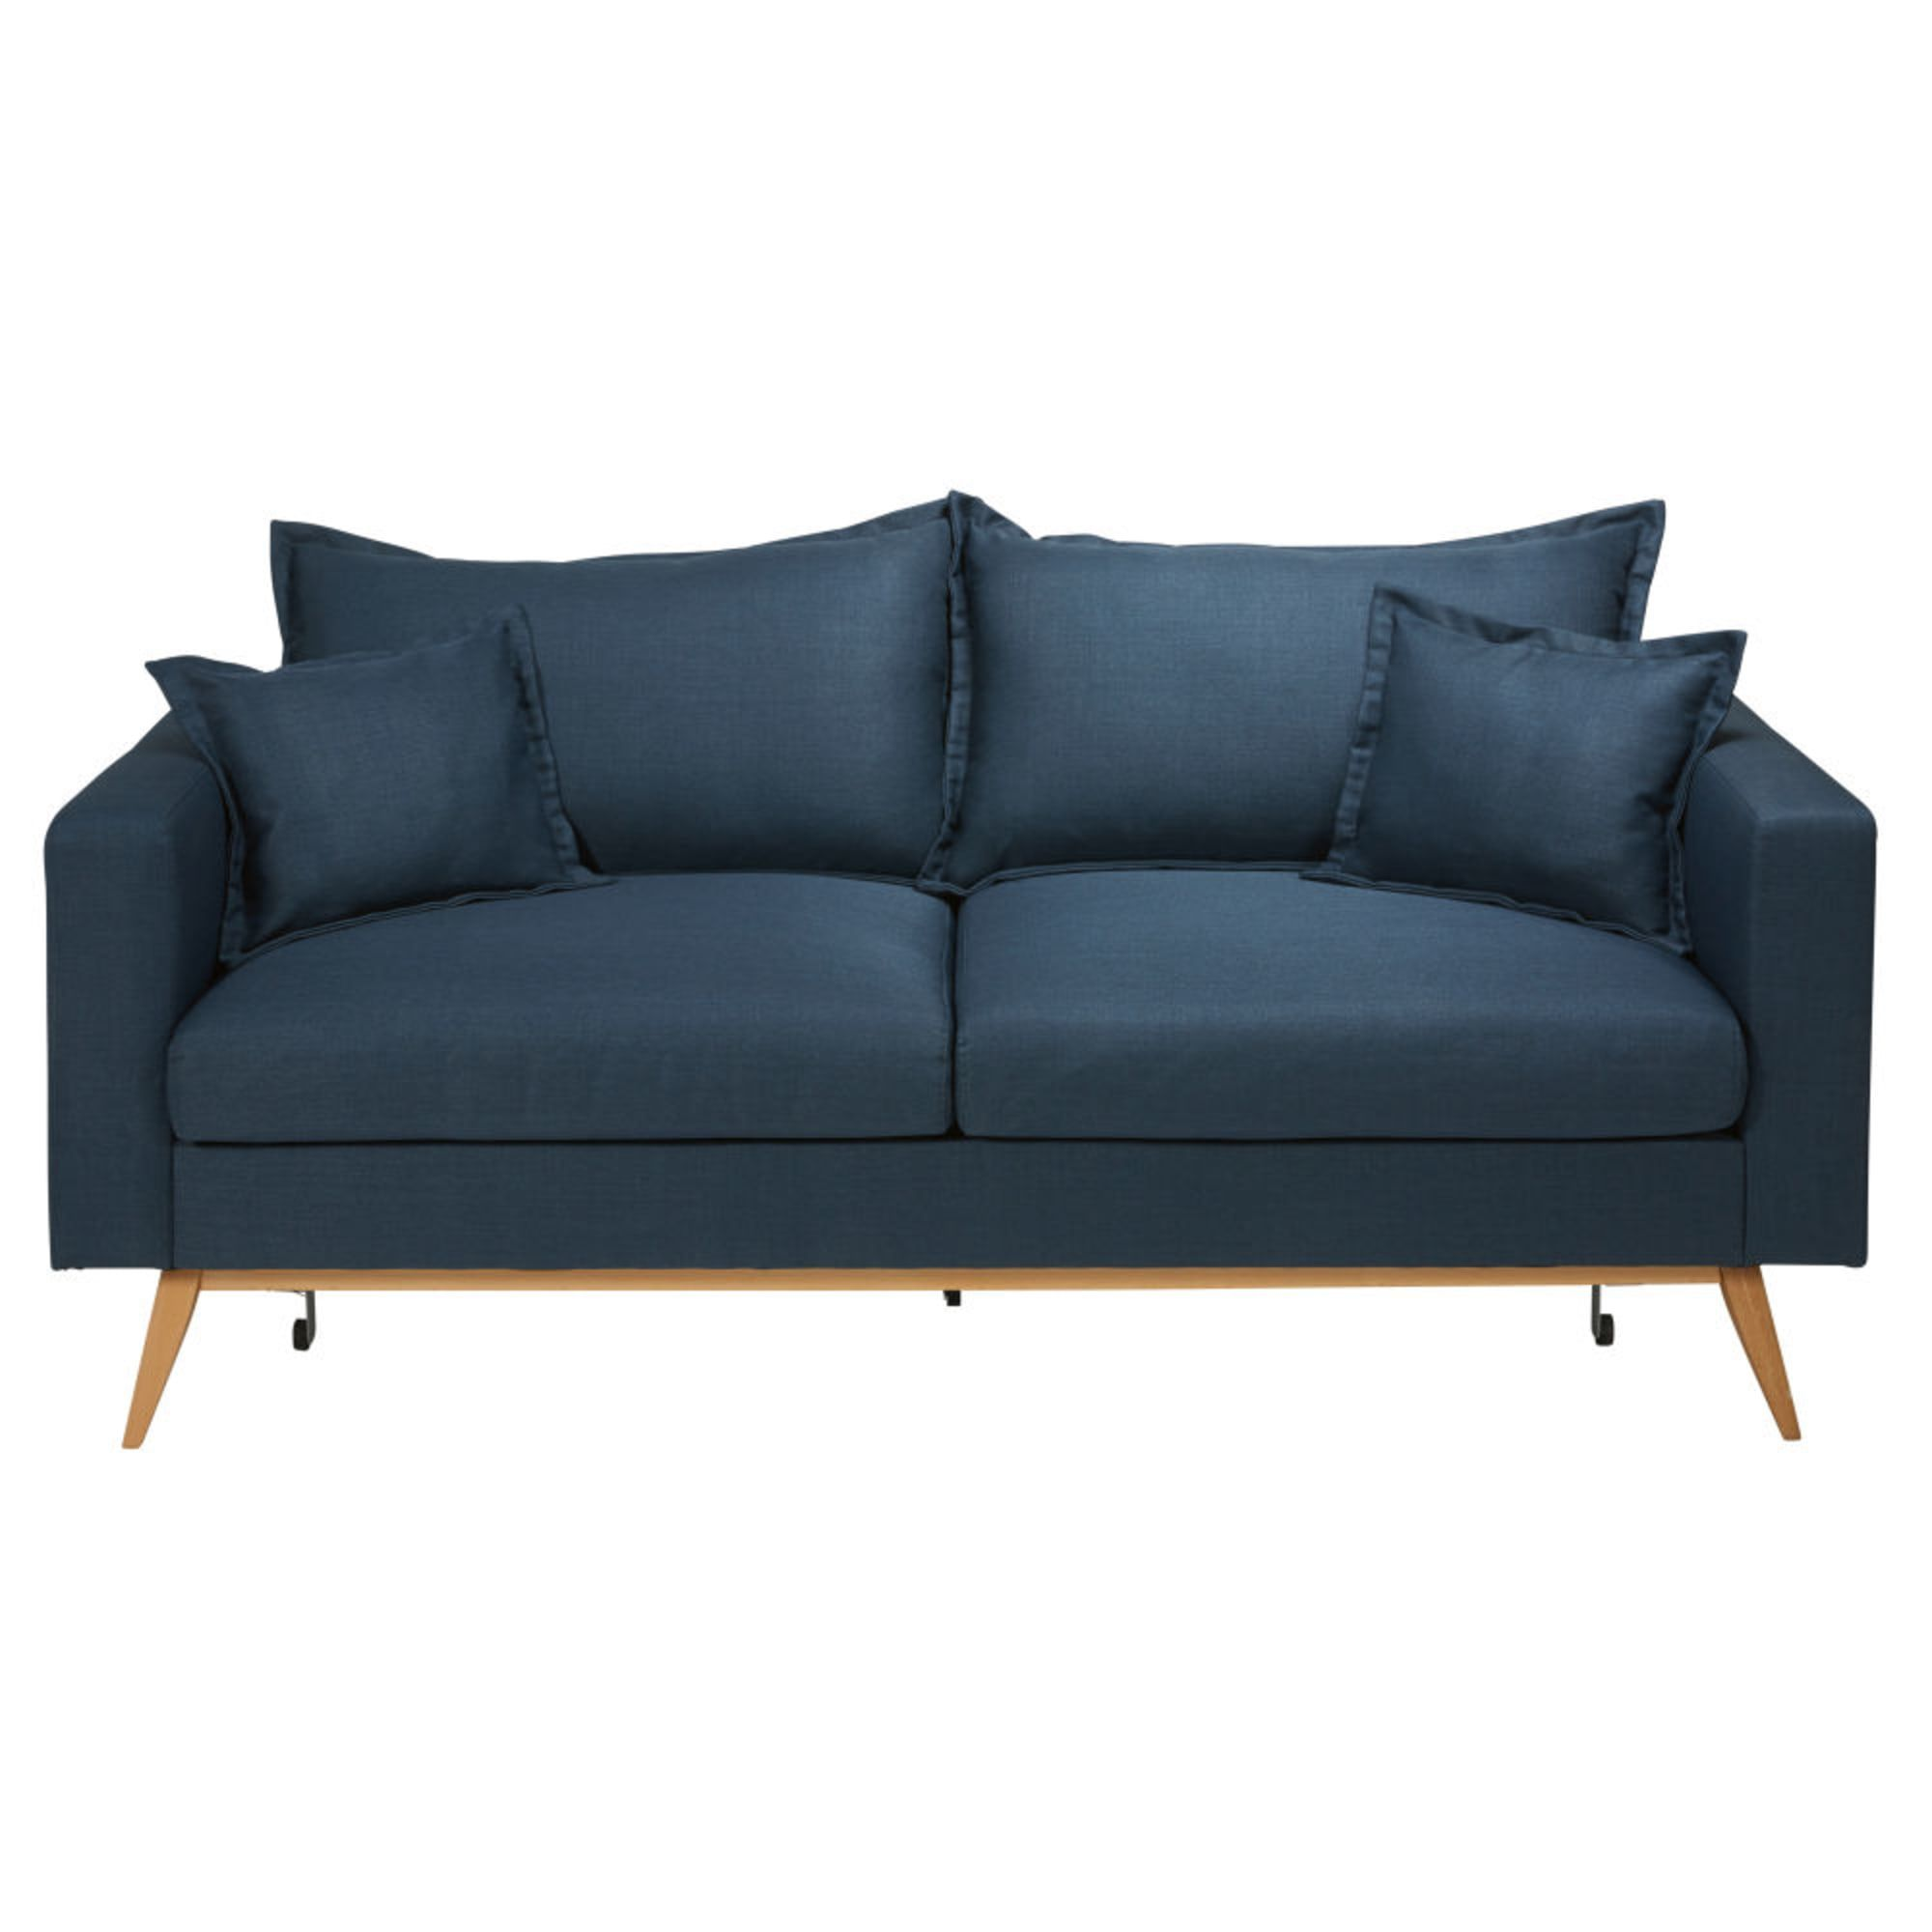 Midnight Blue 3 Seater Fabric Sofa Bed Maisons Du Monde Fabric Sofa Bed Blue Fabric Sofa Sofa